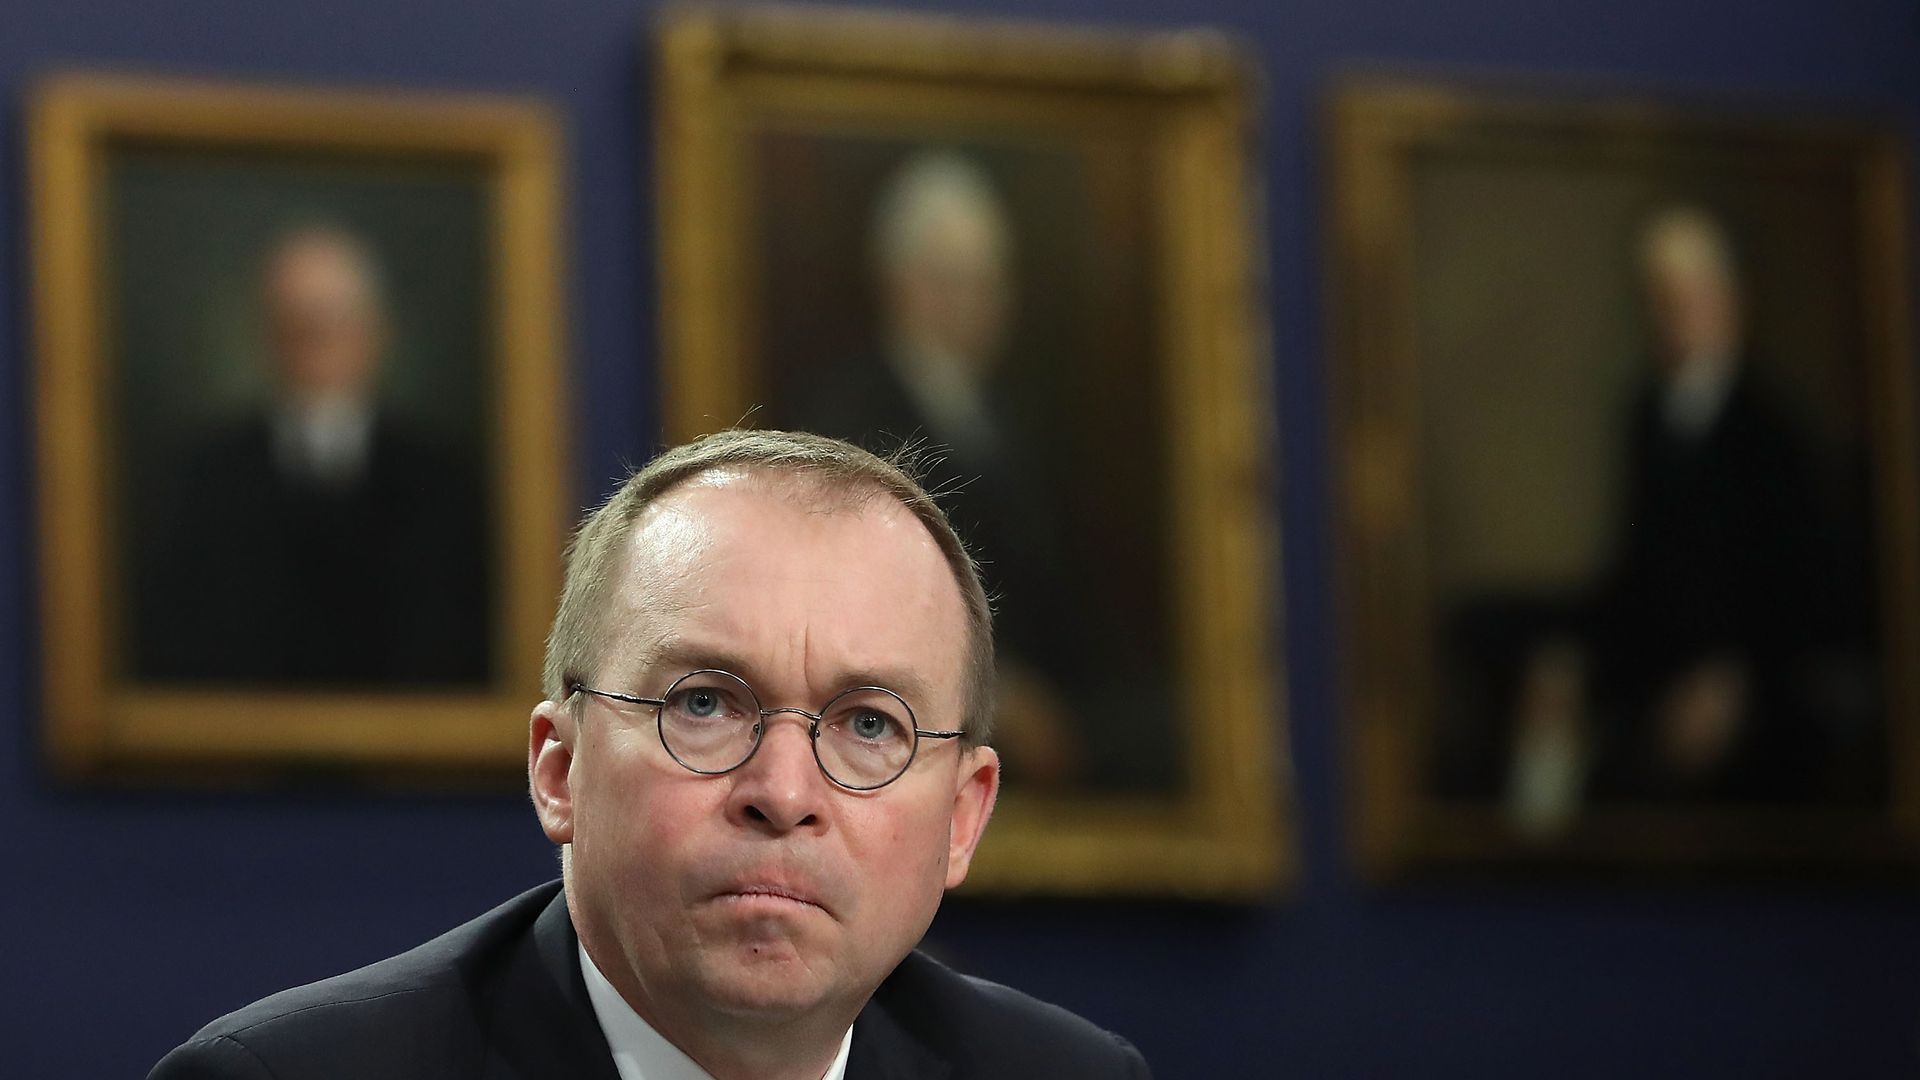 Mick Mulvaney looks concerned.